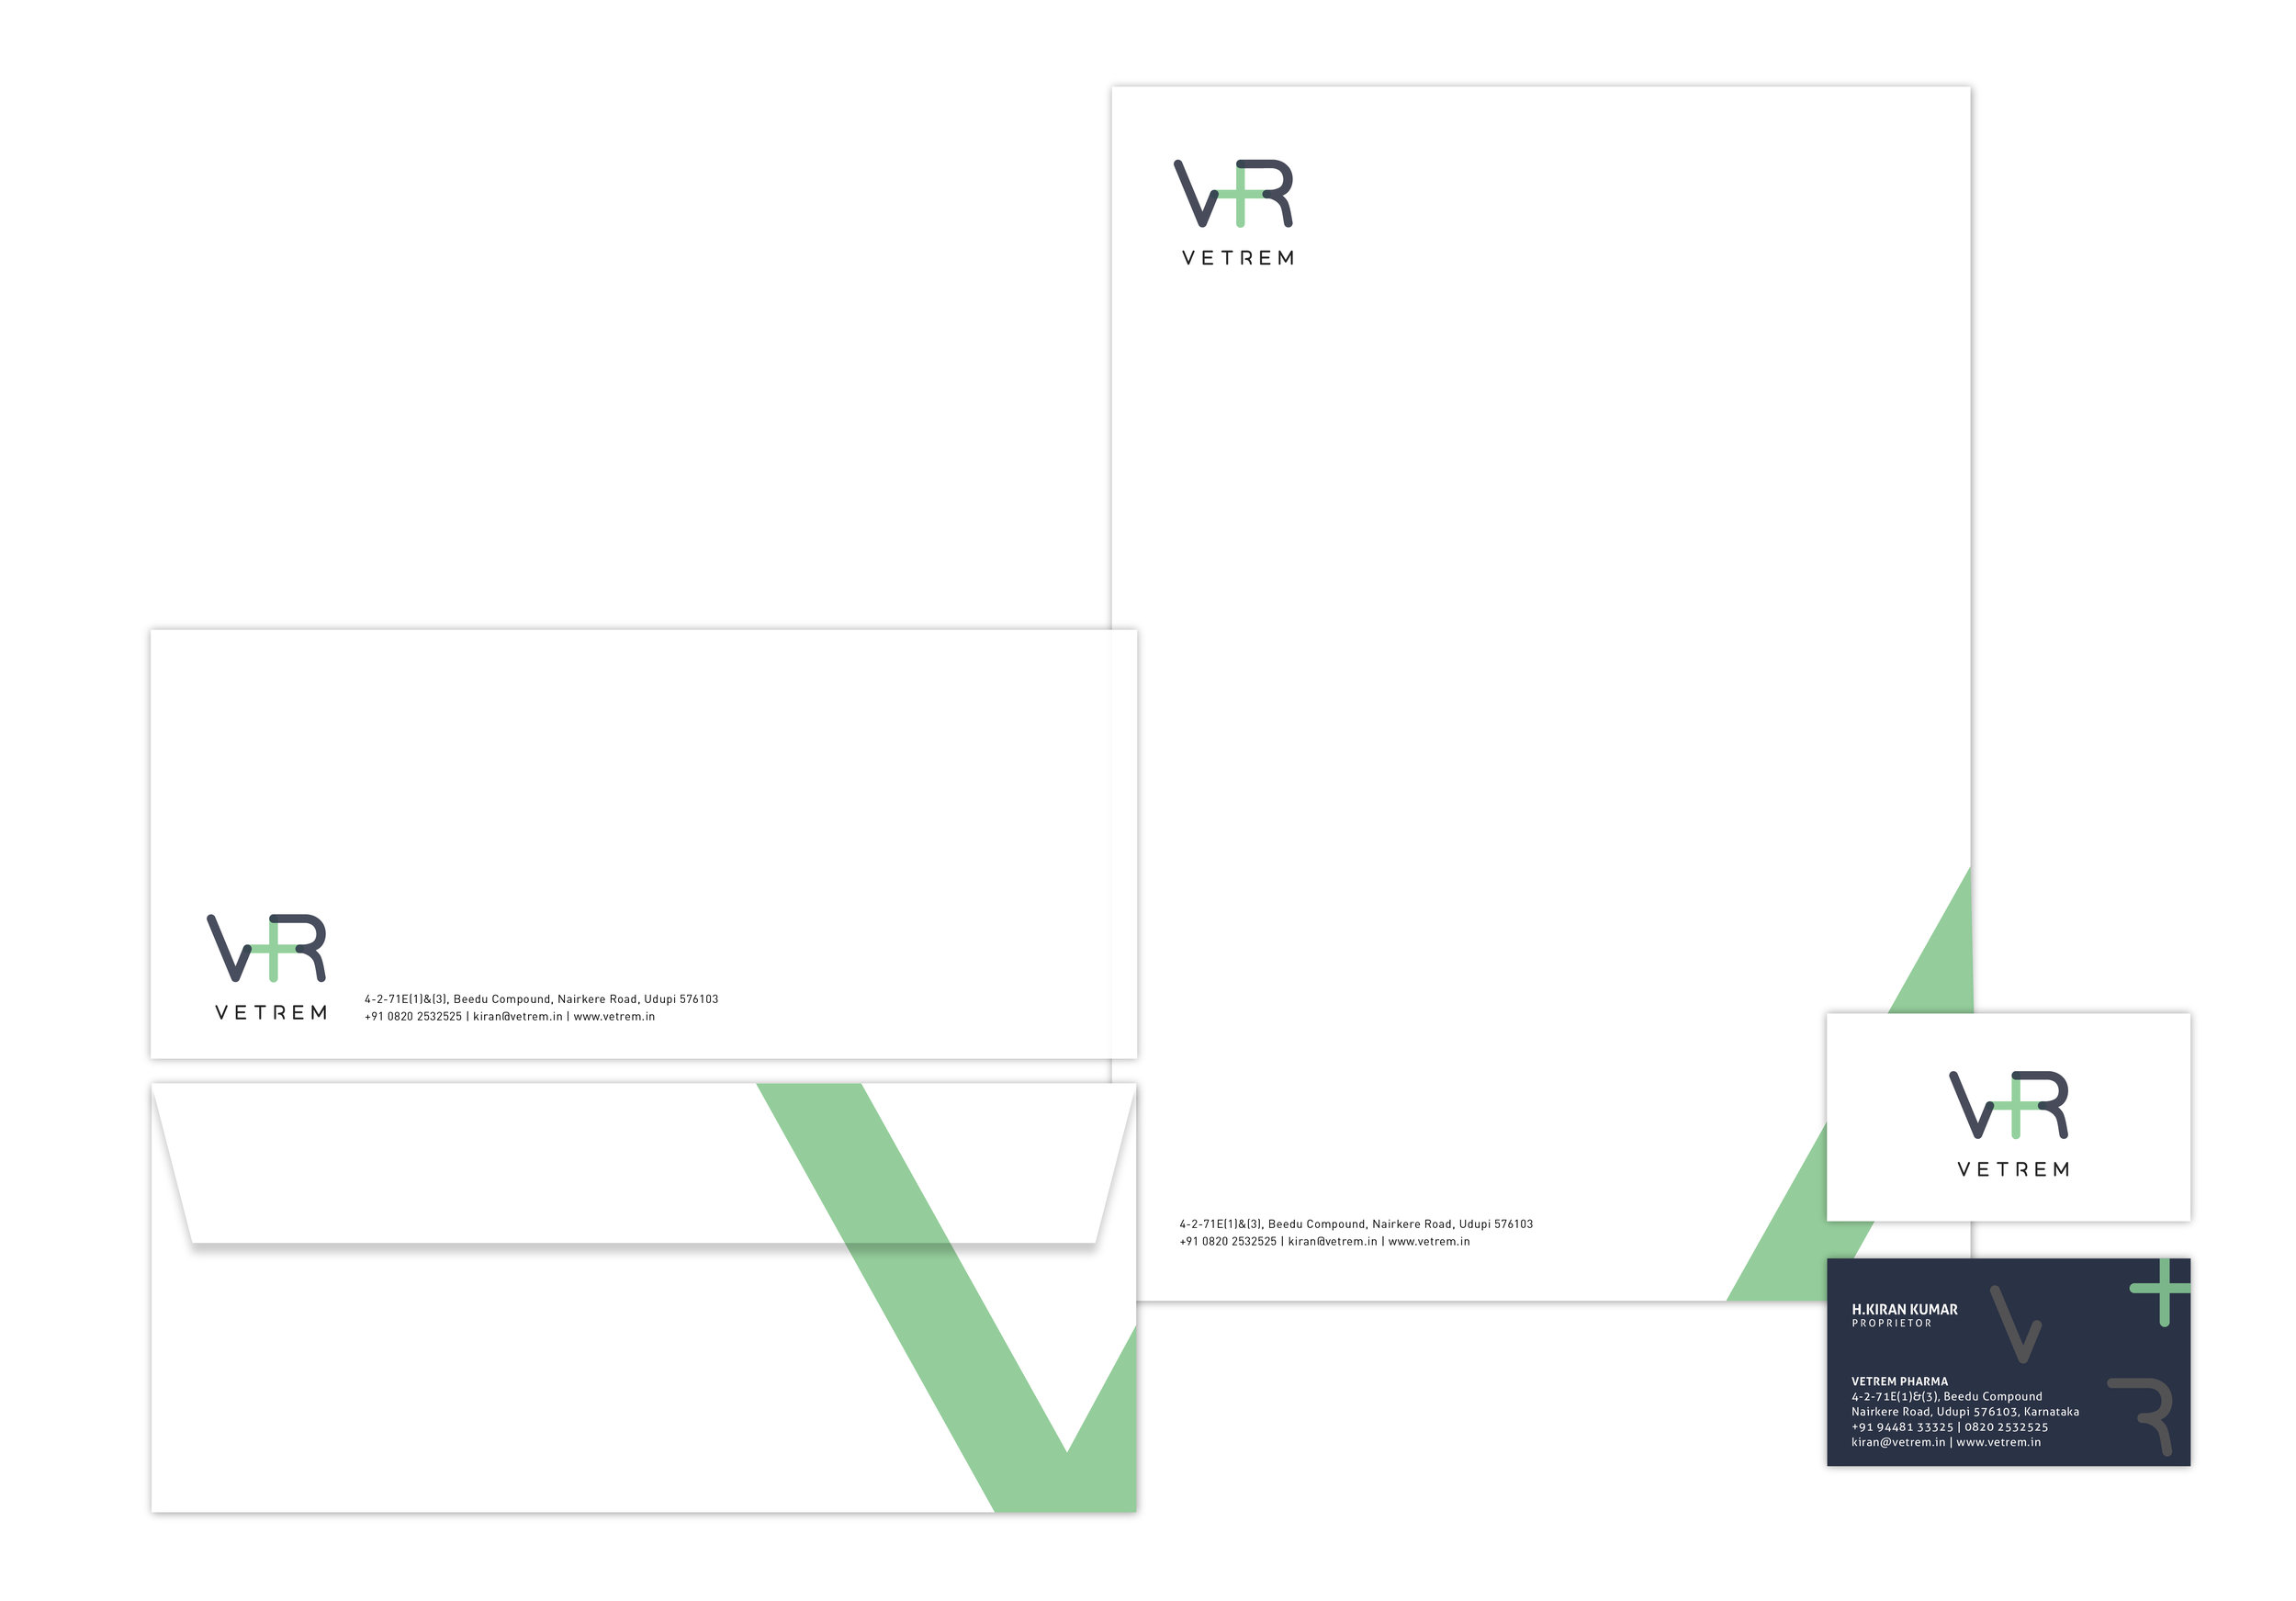 Vetrem stationery-01.jpg